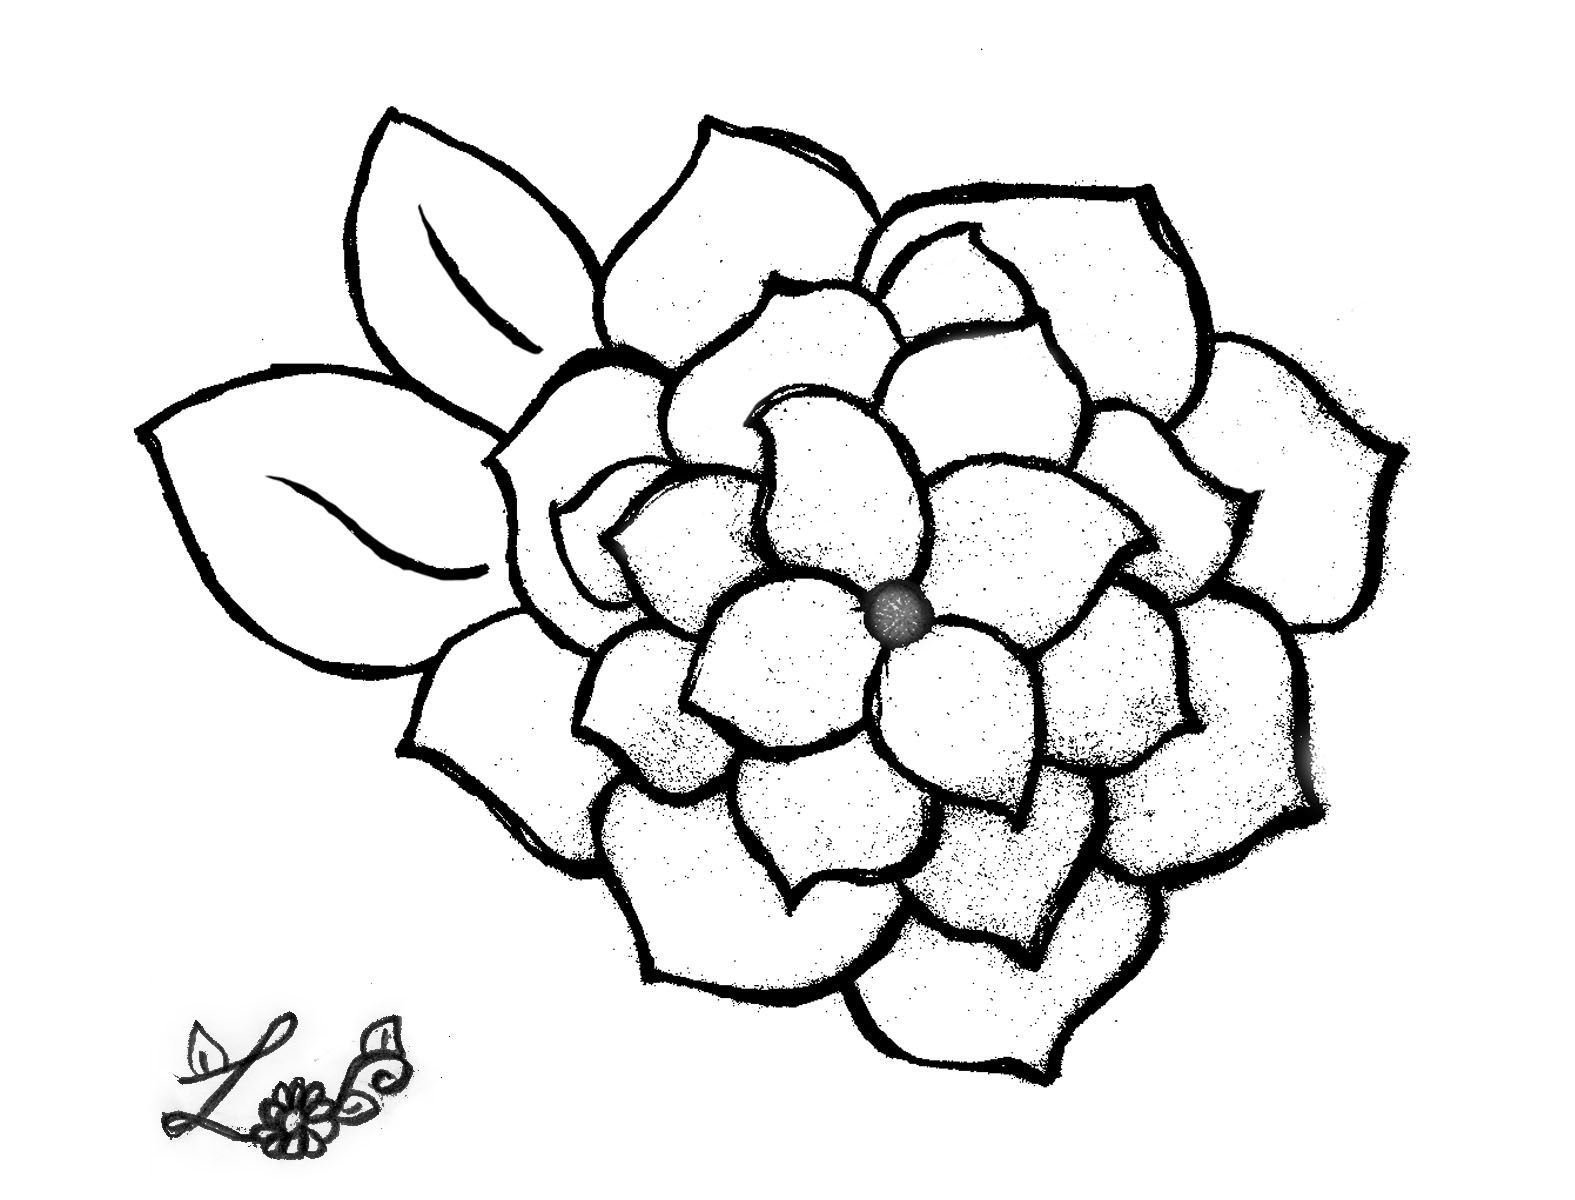 A Coloring Page Of A Flower By Lily At 9 Yrs Old Coloring Pages